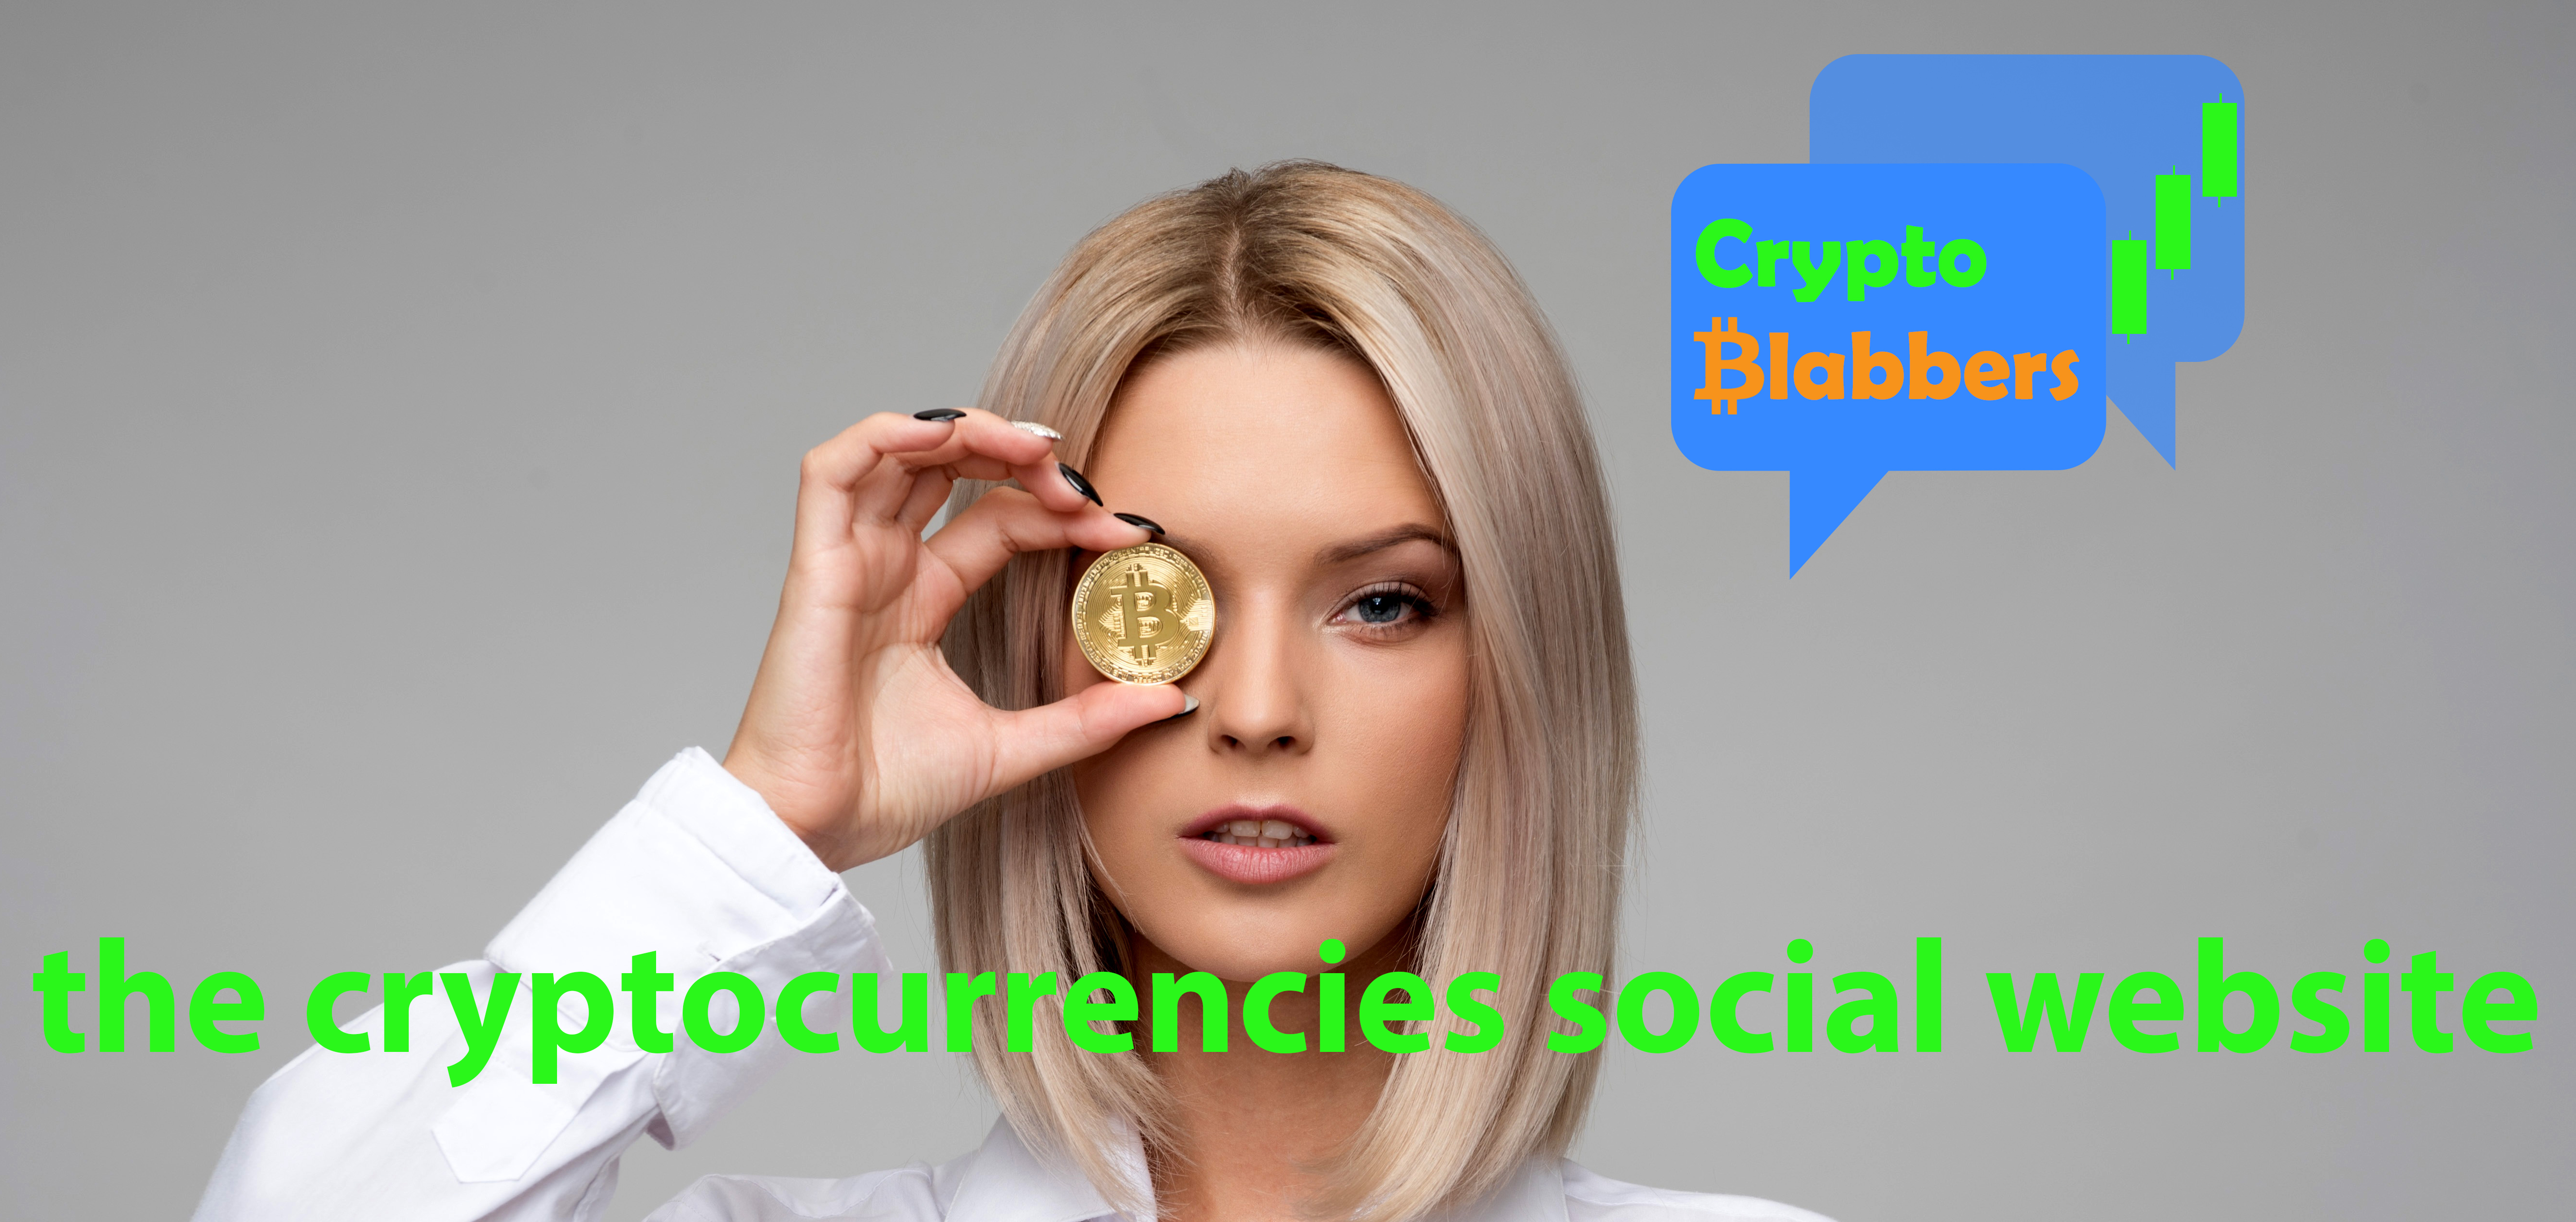 Crypto Blabbers - the cryptocurrencies social website